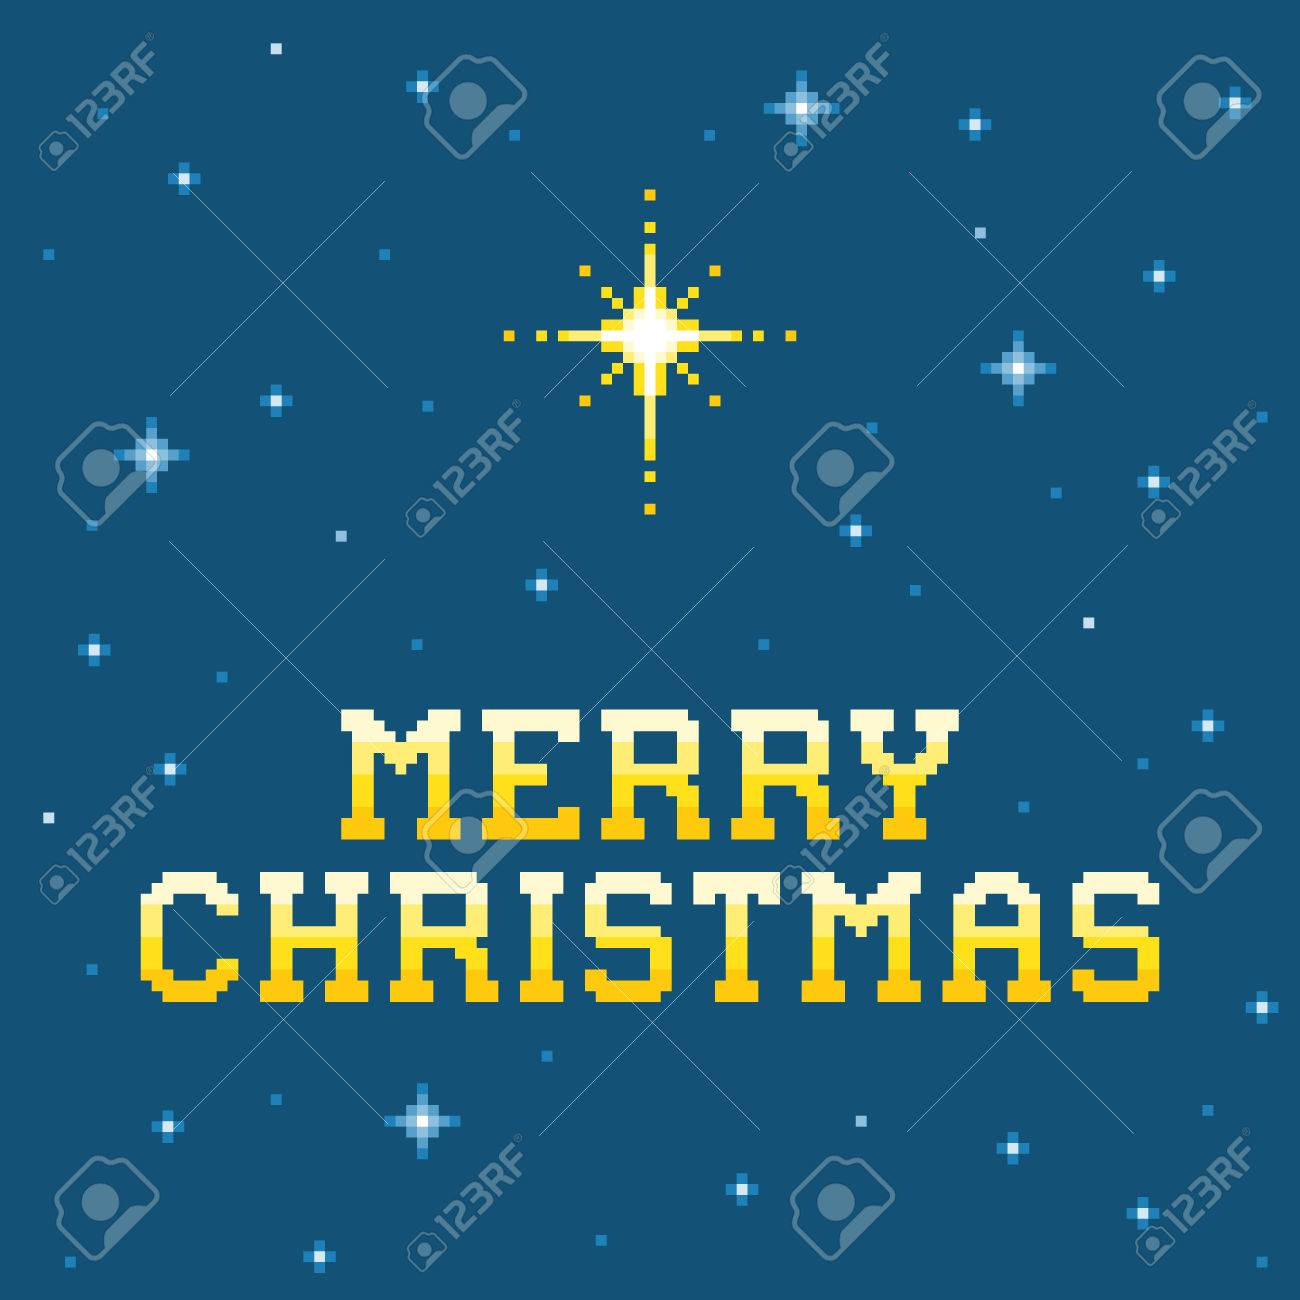 8-bit Pixel Merry Christmas Message with Star of Bethlehem Stock Vector - 34338147